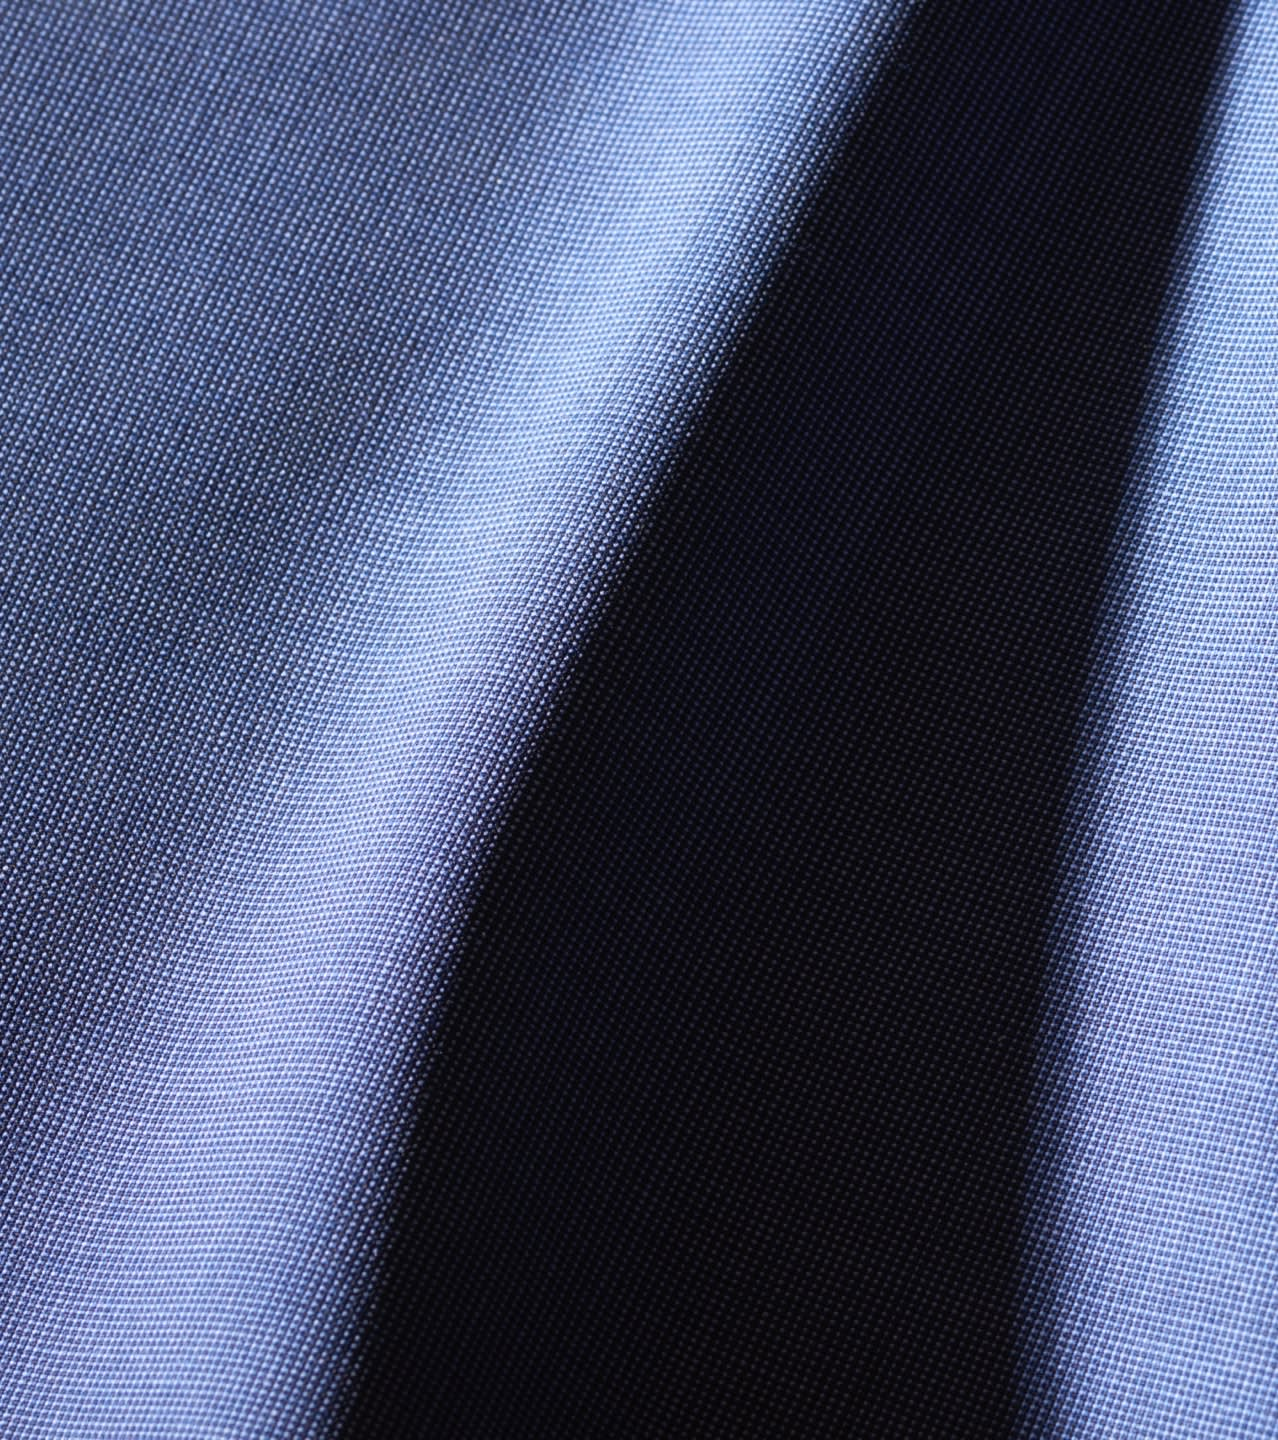 A light blue wool and silk fabric from the Brioni Bespoke selection